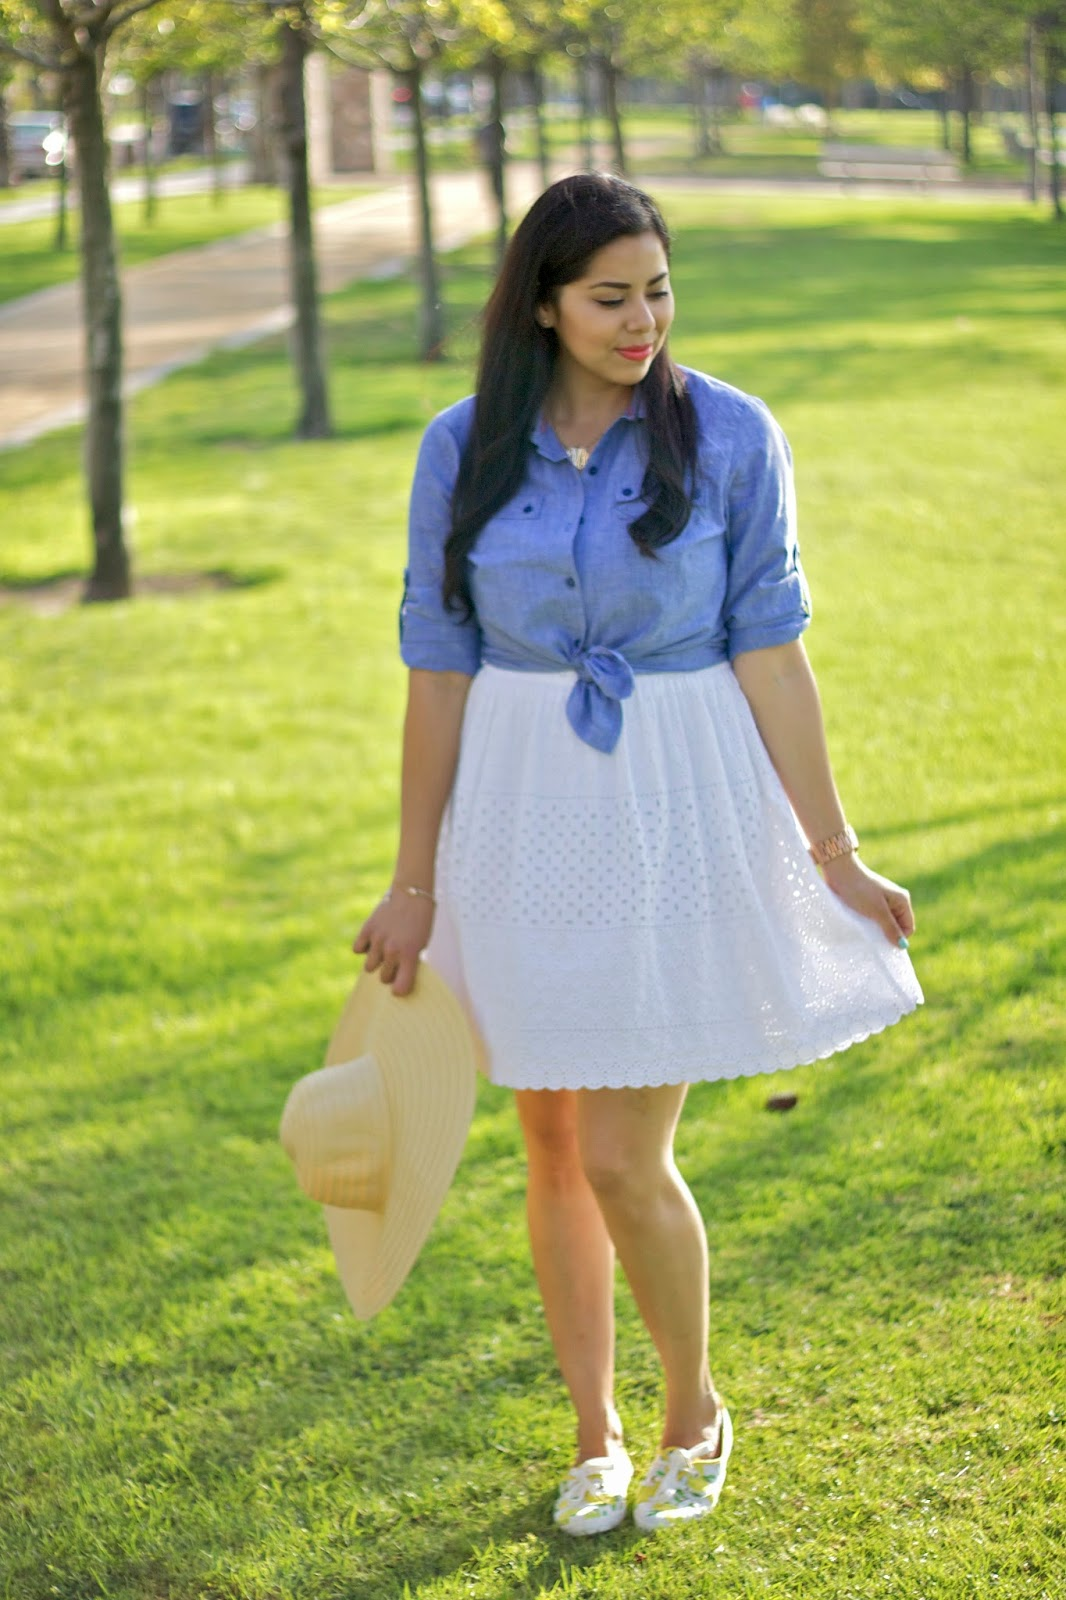 White dress with tennis shoes, white dress dressed down, affordable fashionable outfit